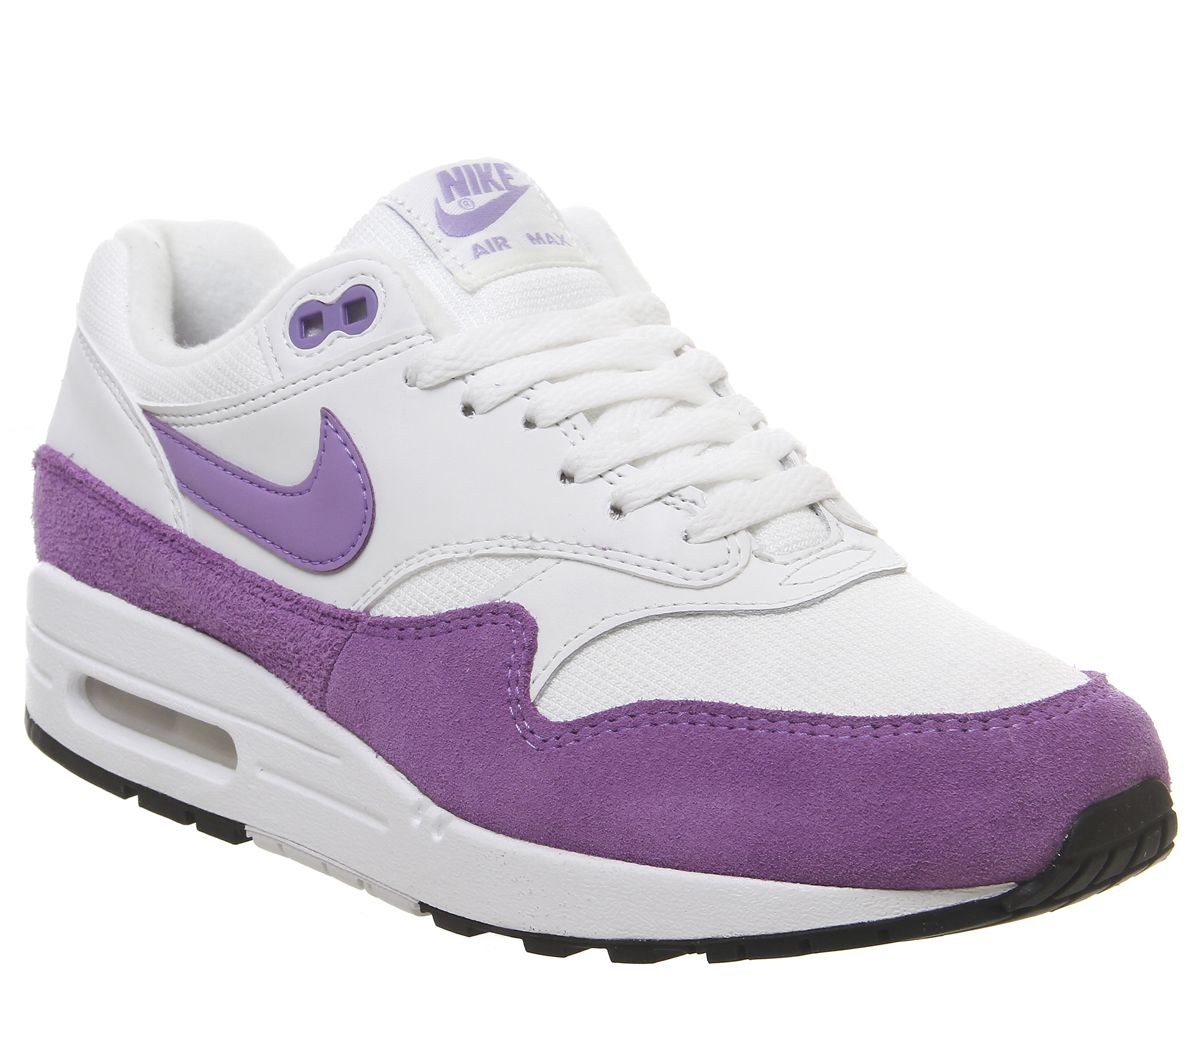 buy popular 9fa9b 04a67 Nike Air Max 1 Trainers Summit White Atomic Violet Black - Hers trainers